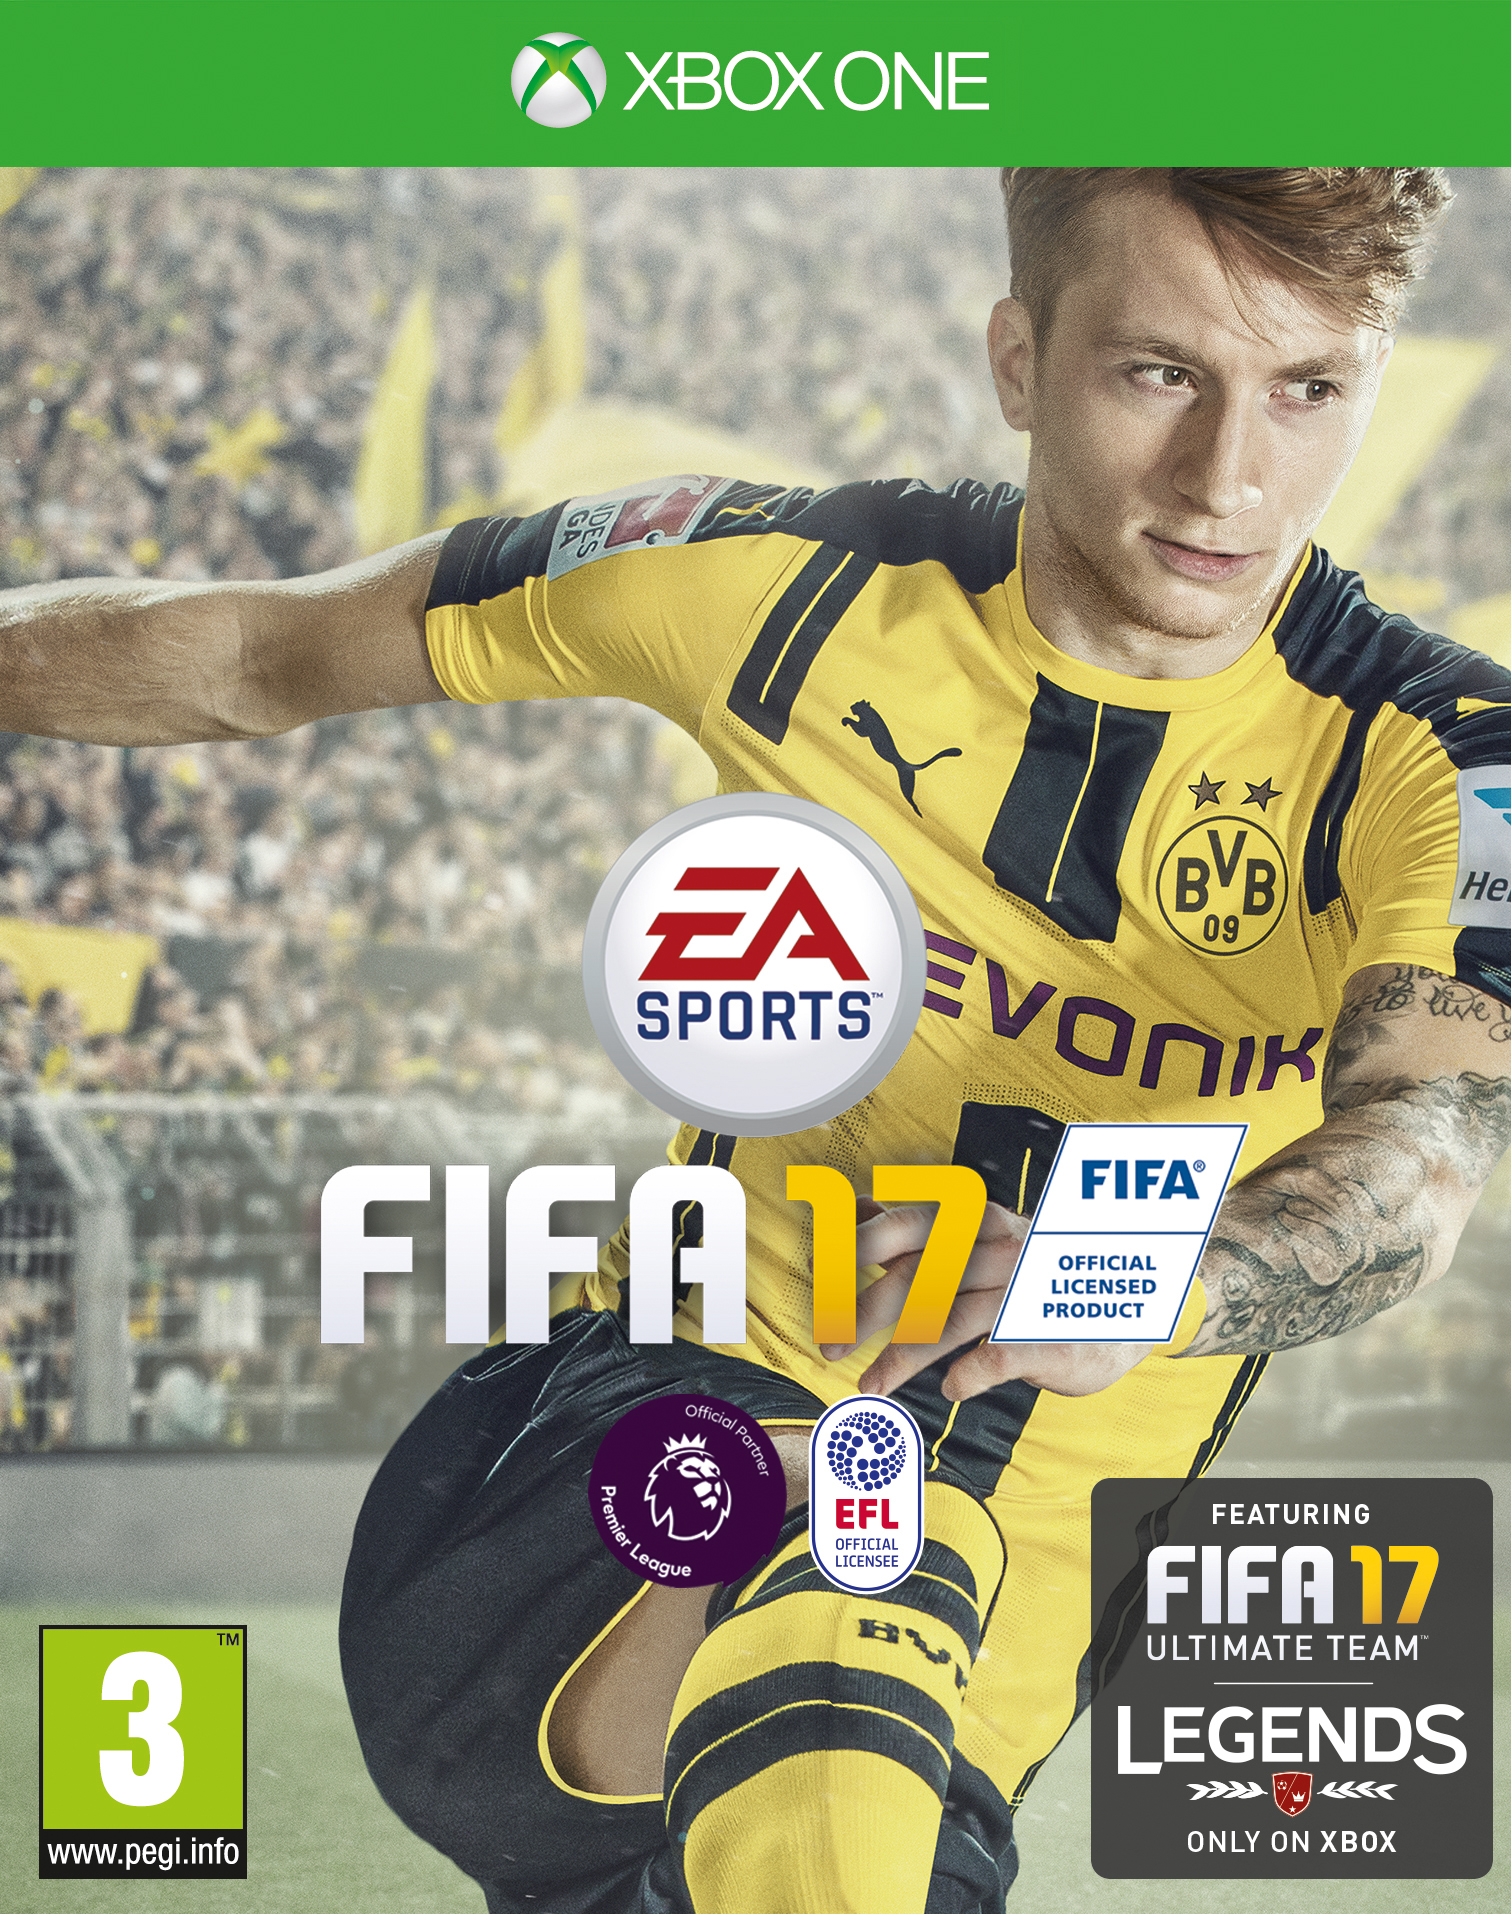 FIFA 17 Review (Xbox One)